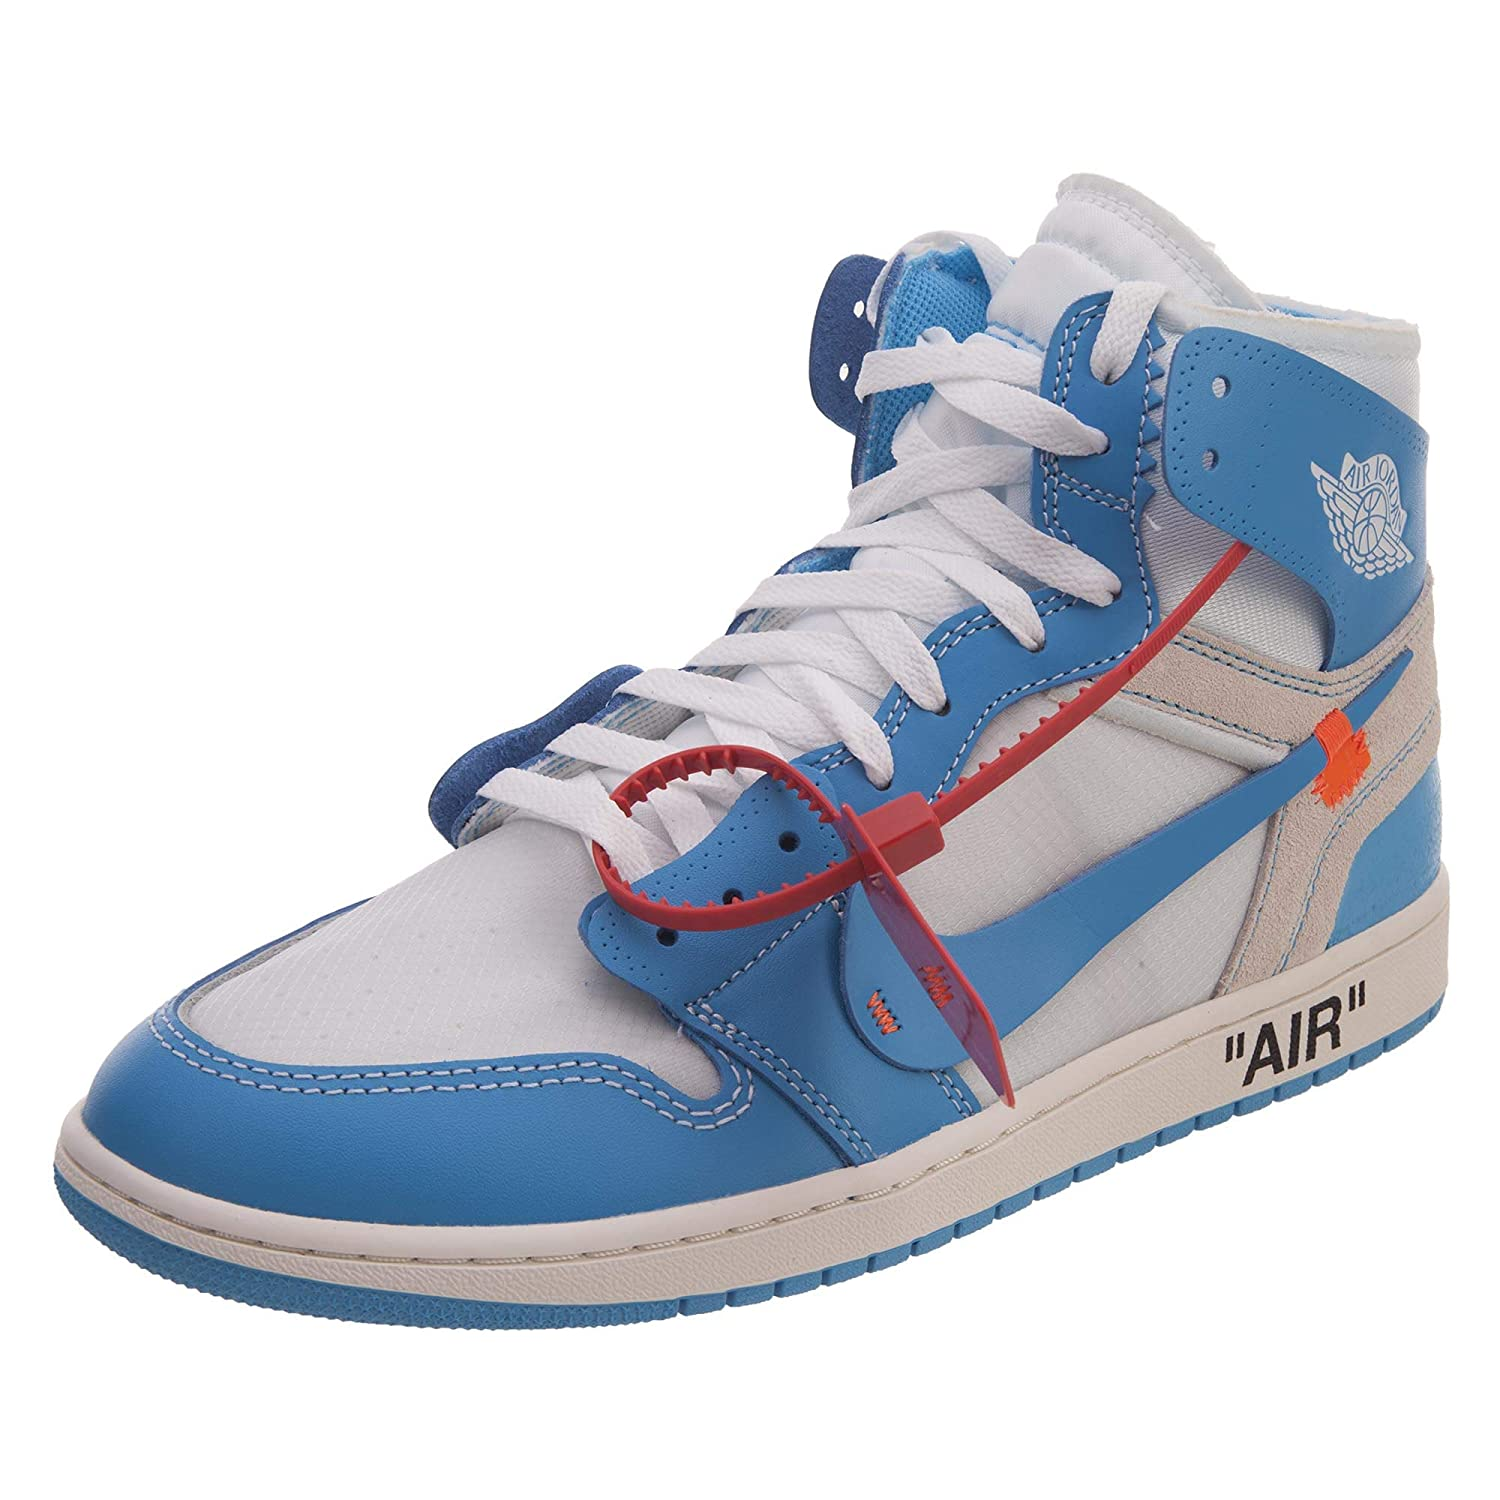 newest 29cf2 fcc52 Amazon.com | Nike Mens Air Jordan 1 X Off White NRG UNC White/Dark Powder  Blue Leather Size 13 | Basketball